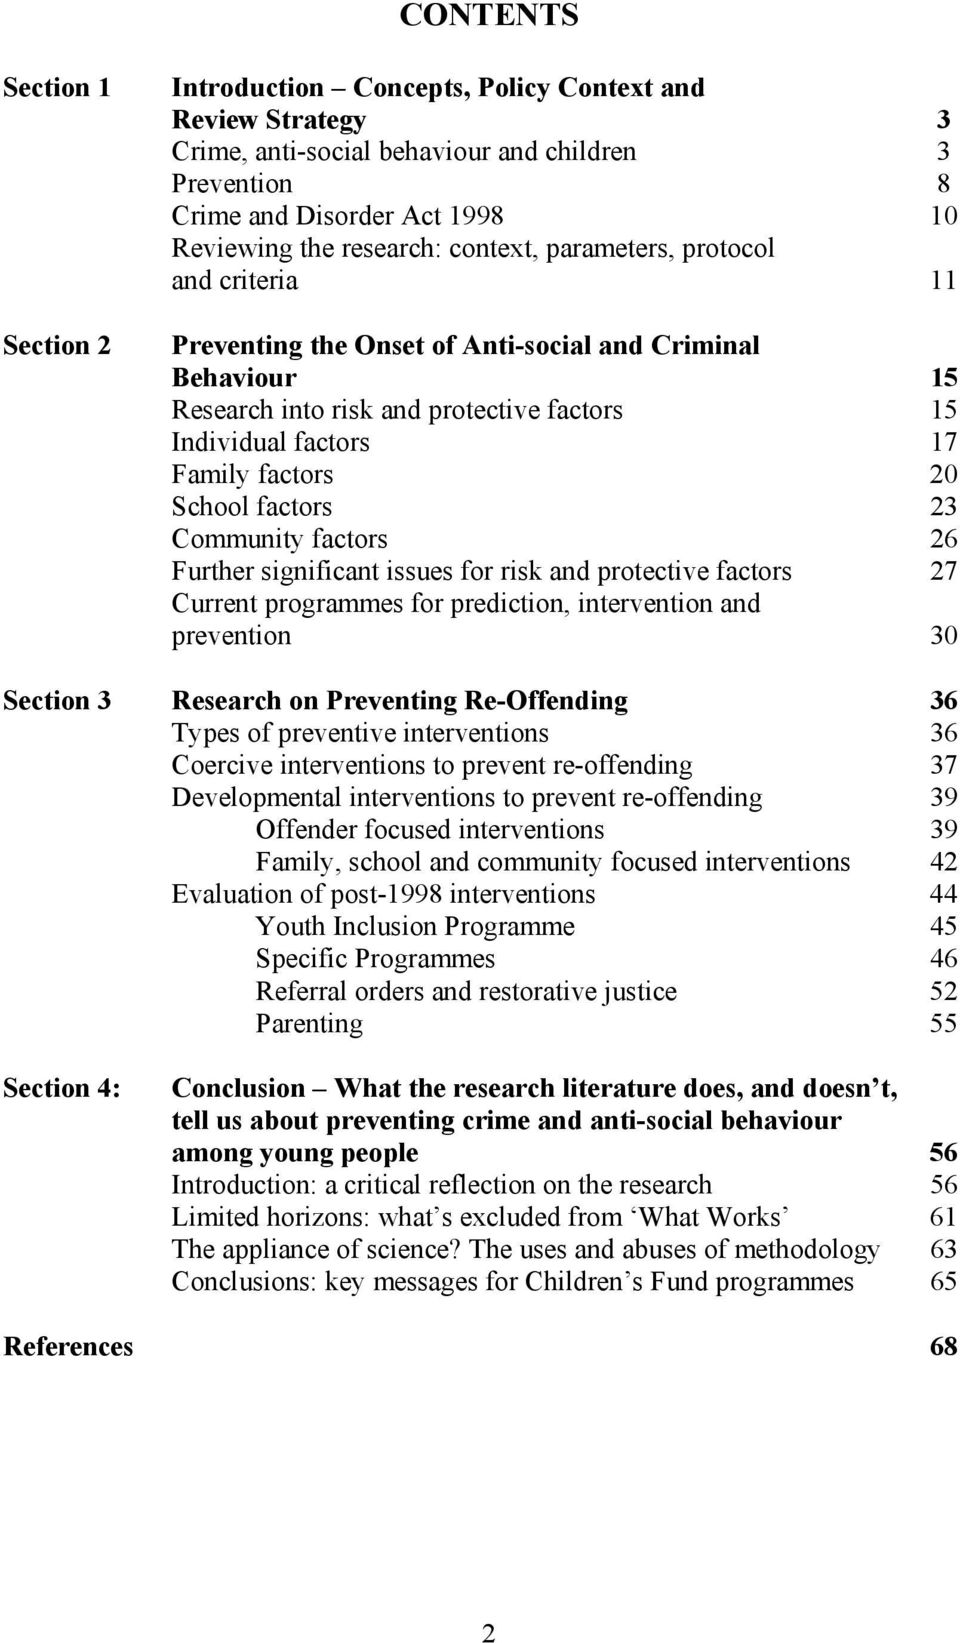 20 School factors 23 Community factors 26 Further significant issues for risk and protective factors 27 Current programmes for prediction, intervention and prevention 30 Section 3 Research on